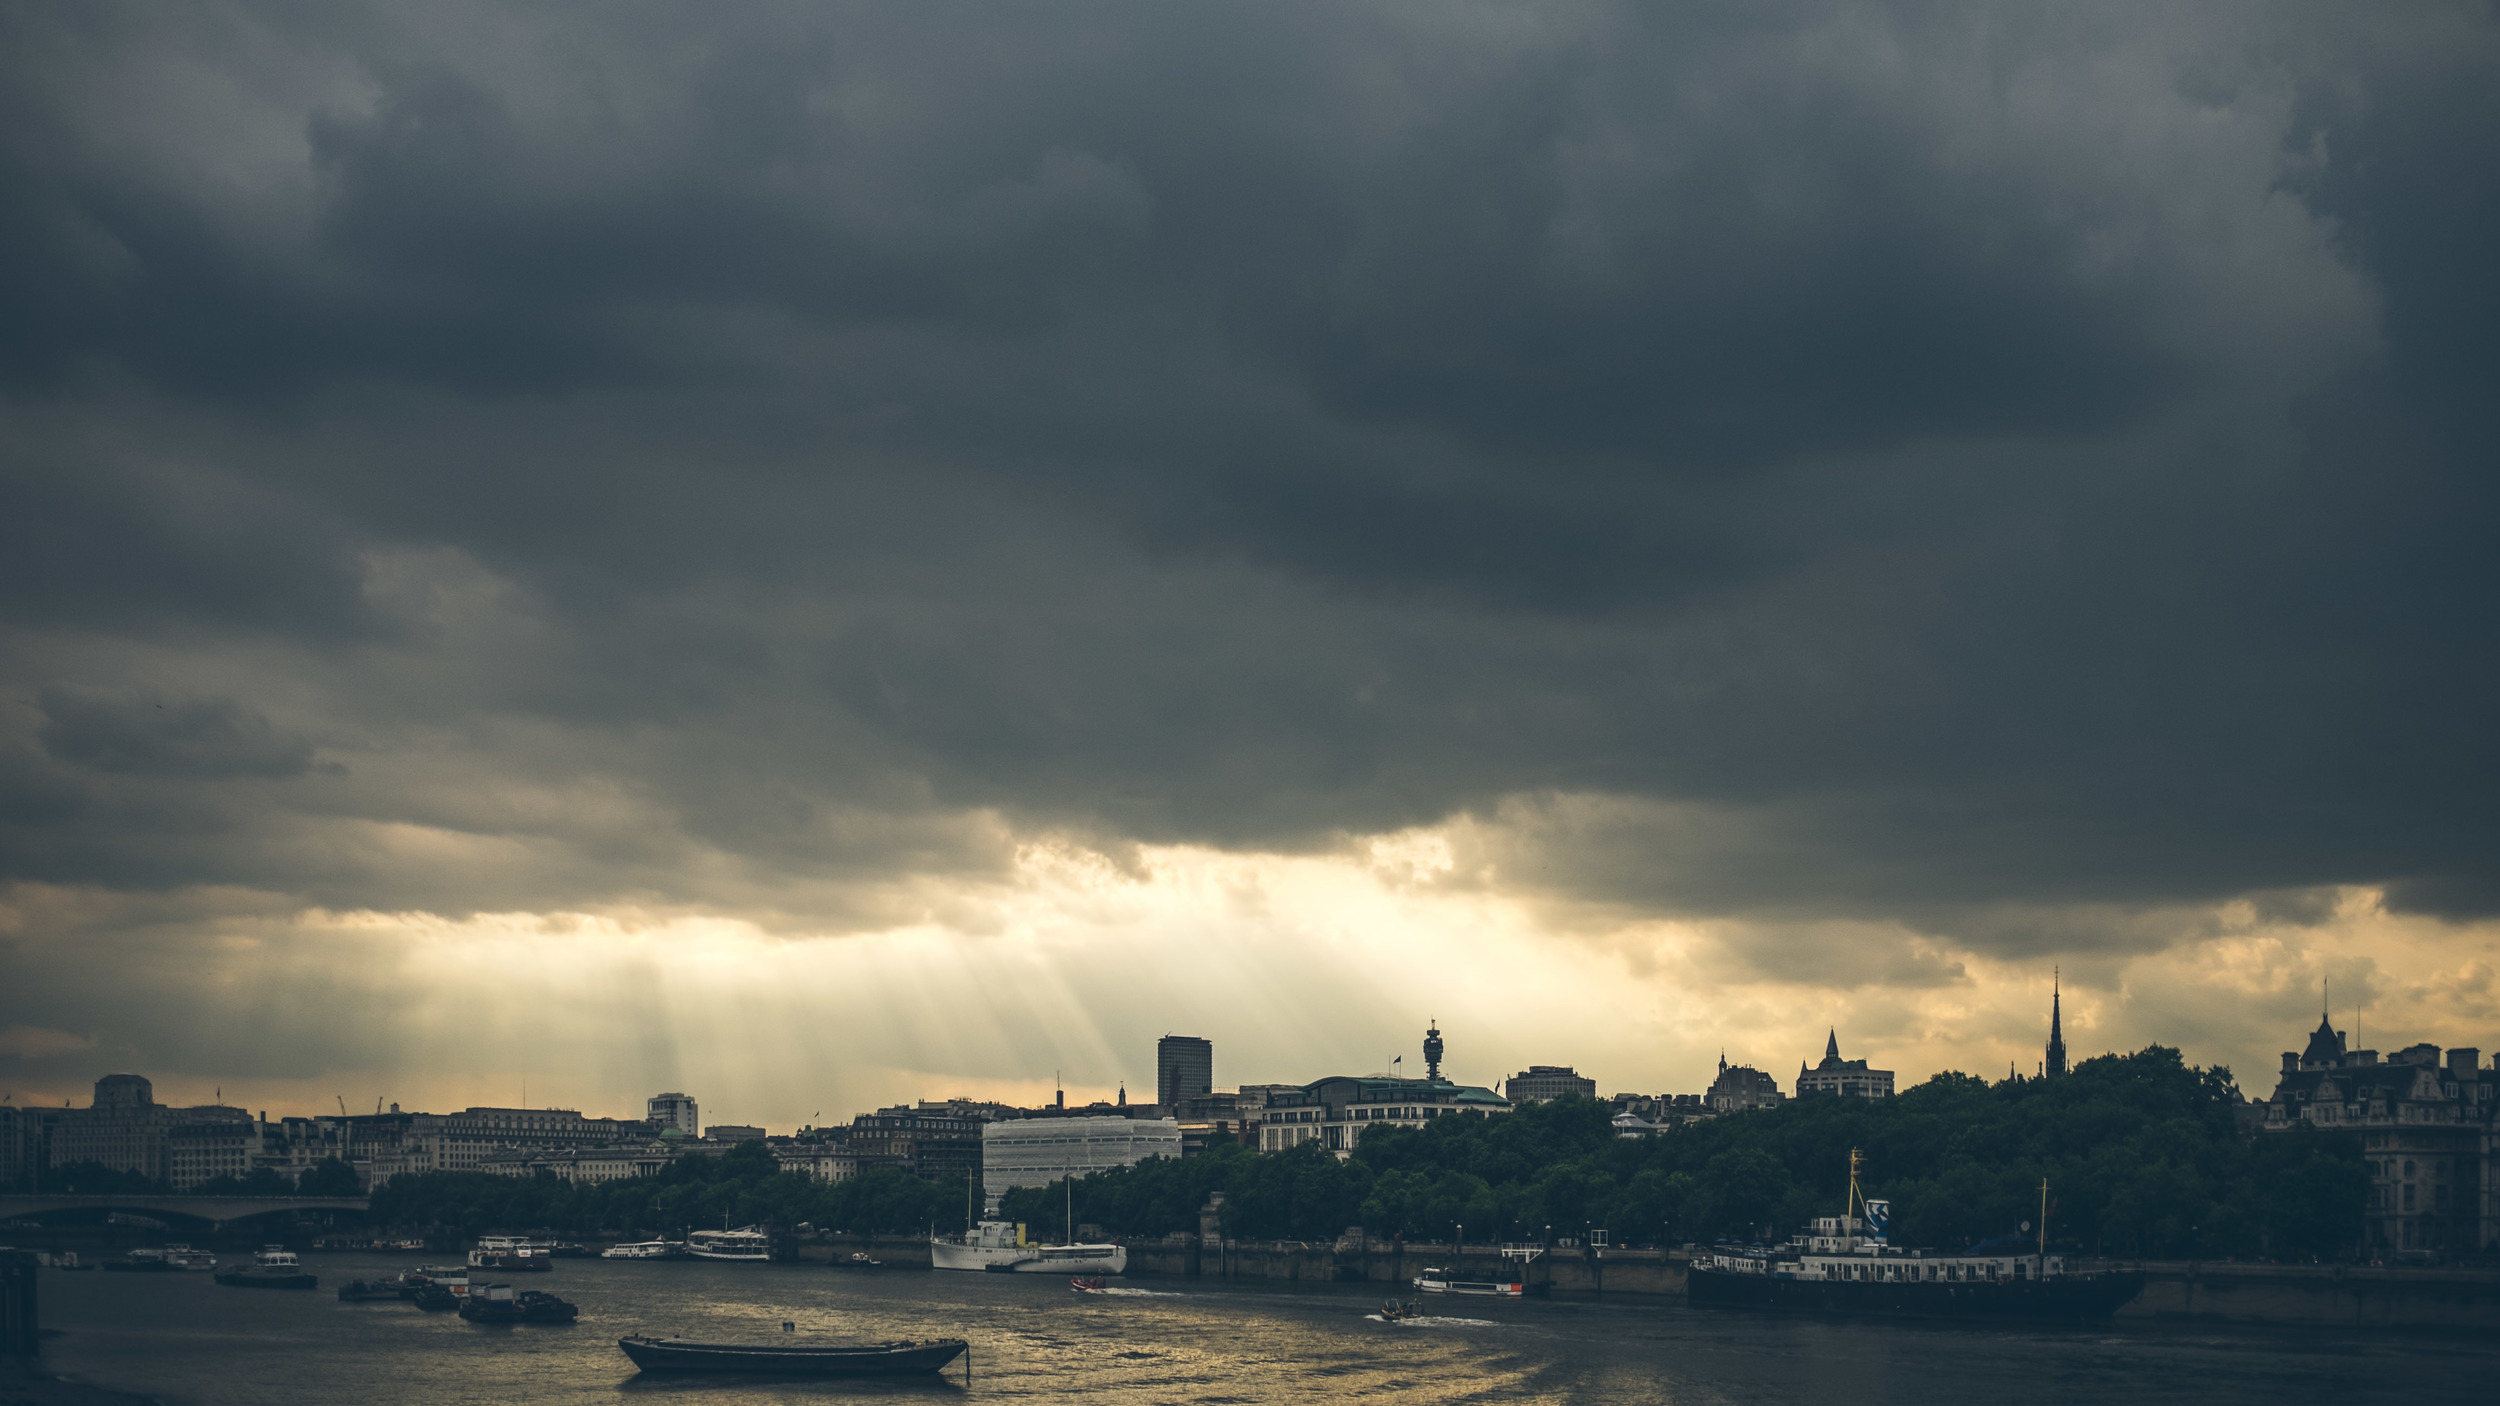 Moody London: that's more like it